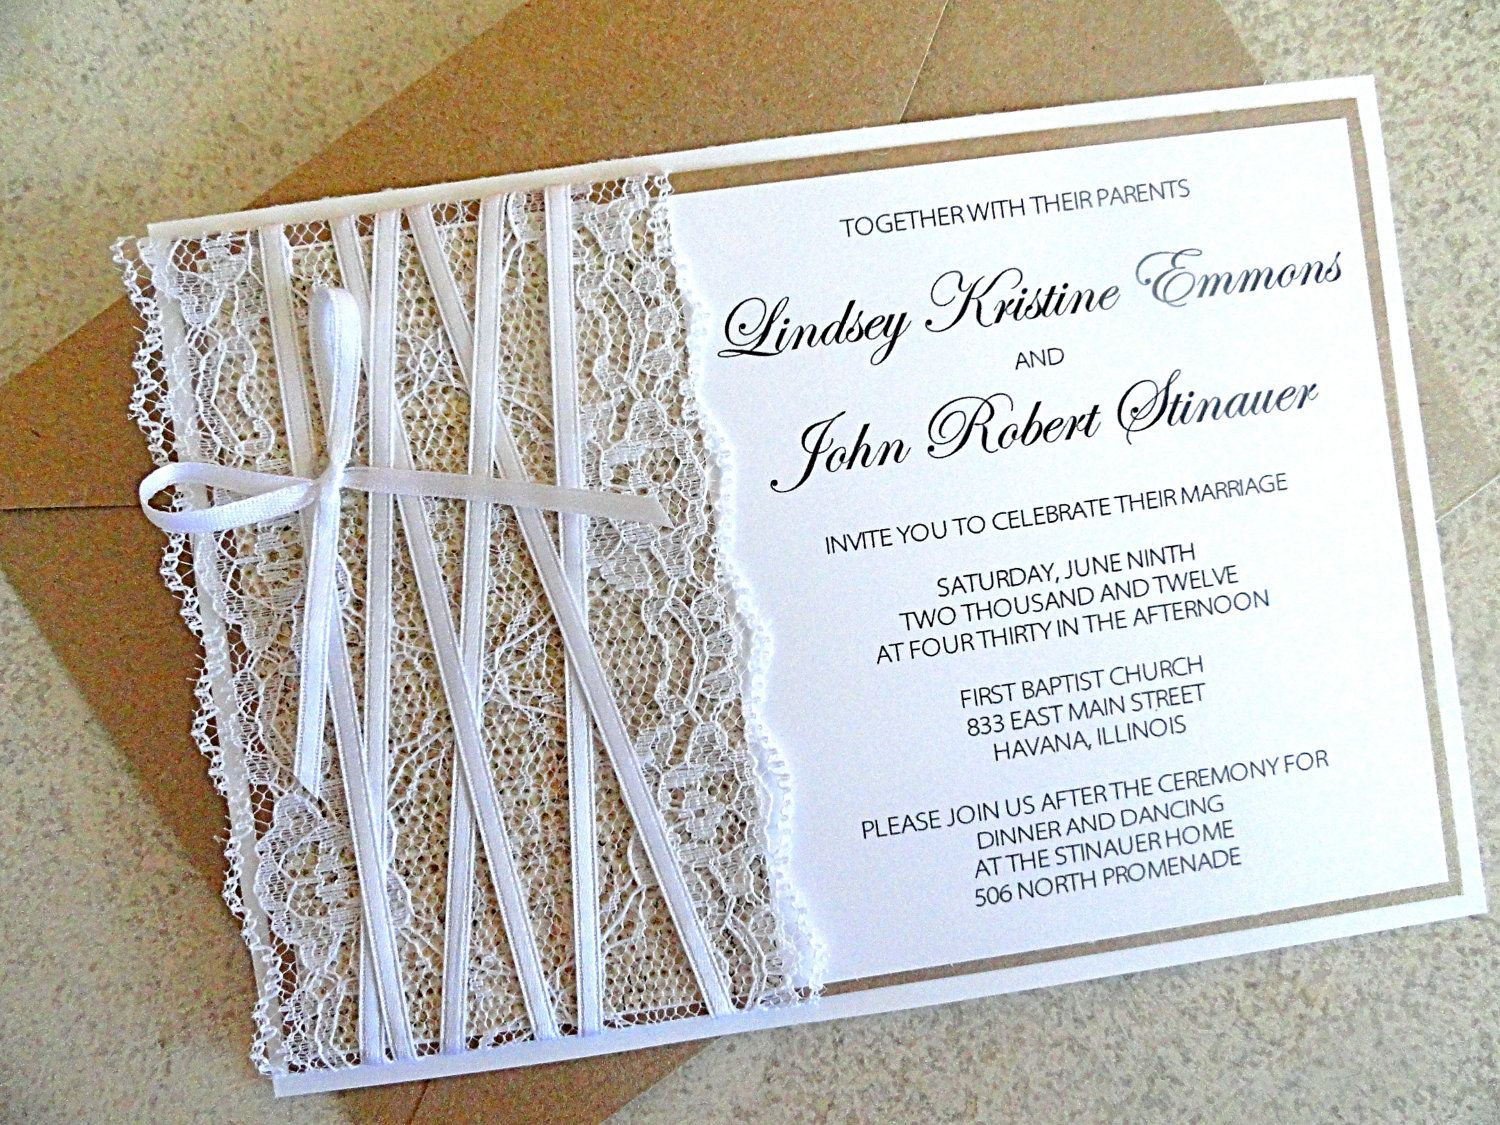 burlap and lace wedding invitation and rsvp card with envelope kraft and white wedding invite